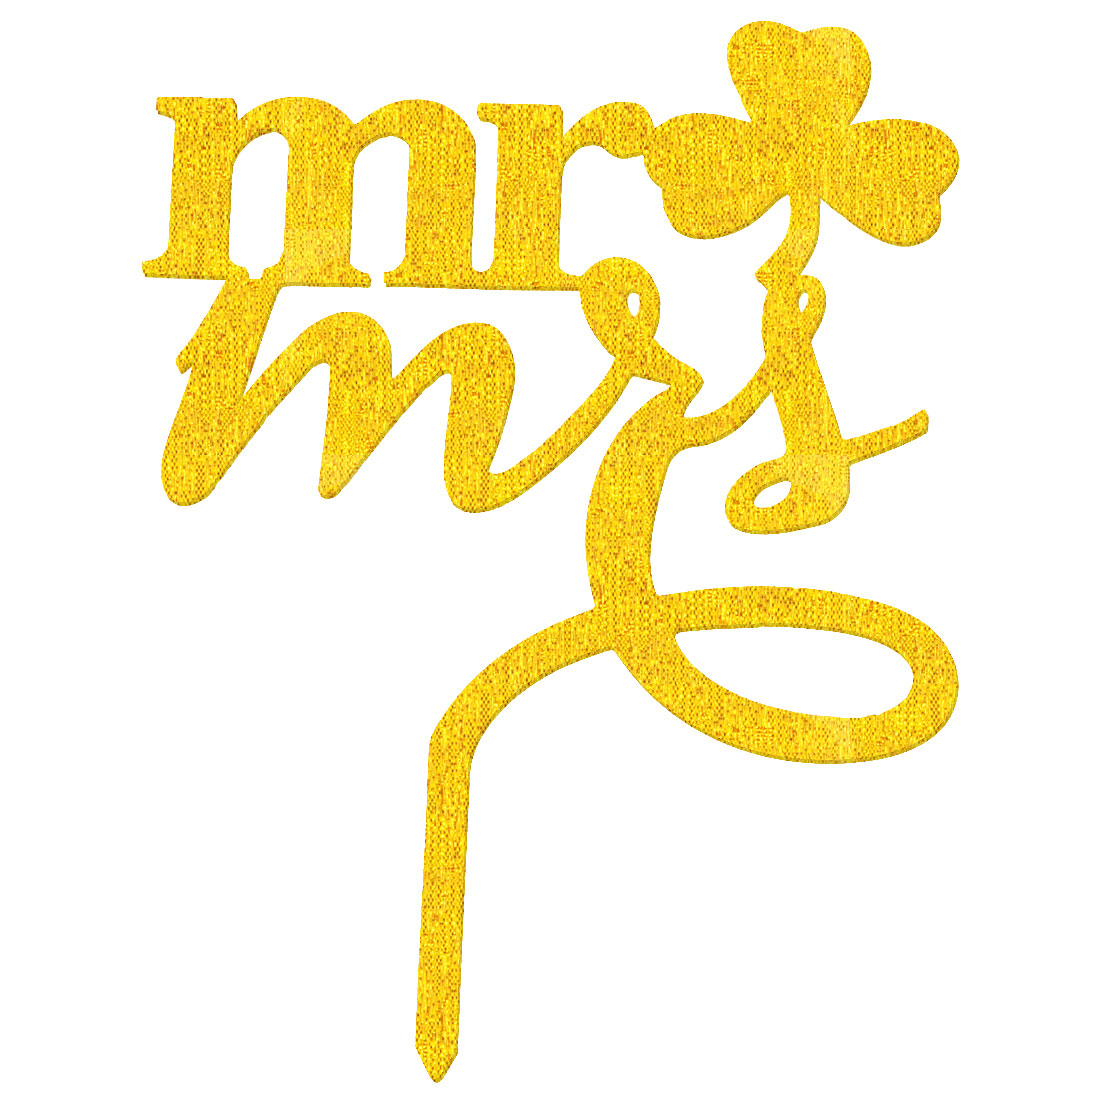 Party Acrylic Mr and Miss Shaped DIY Cupcake Decoration Cake Topper Gold Tone - image 4 of 4